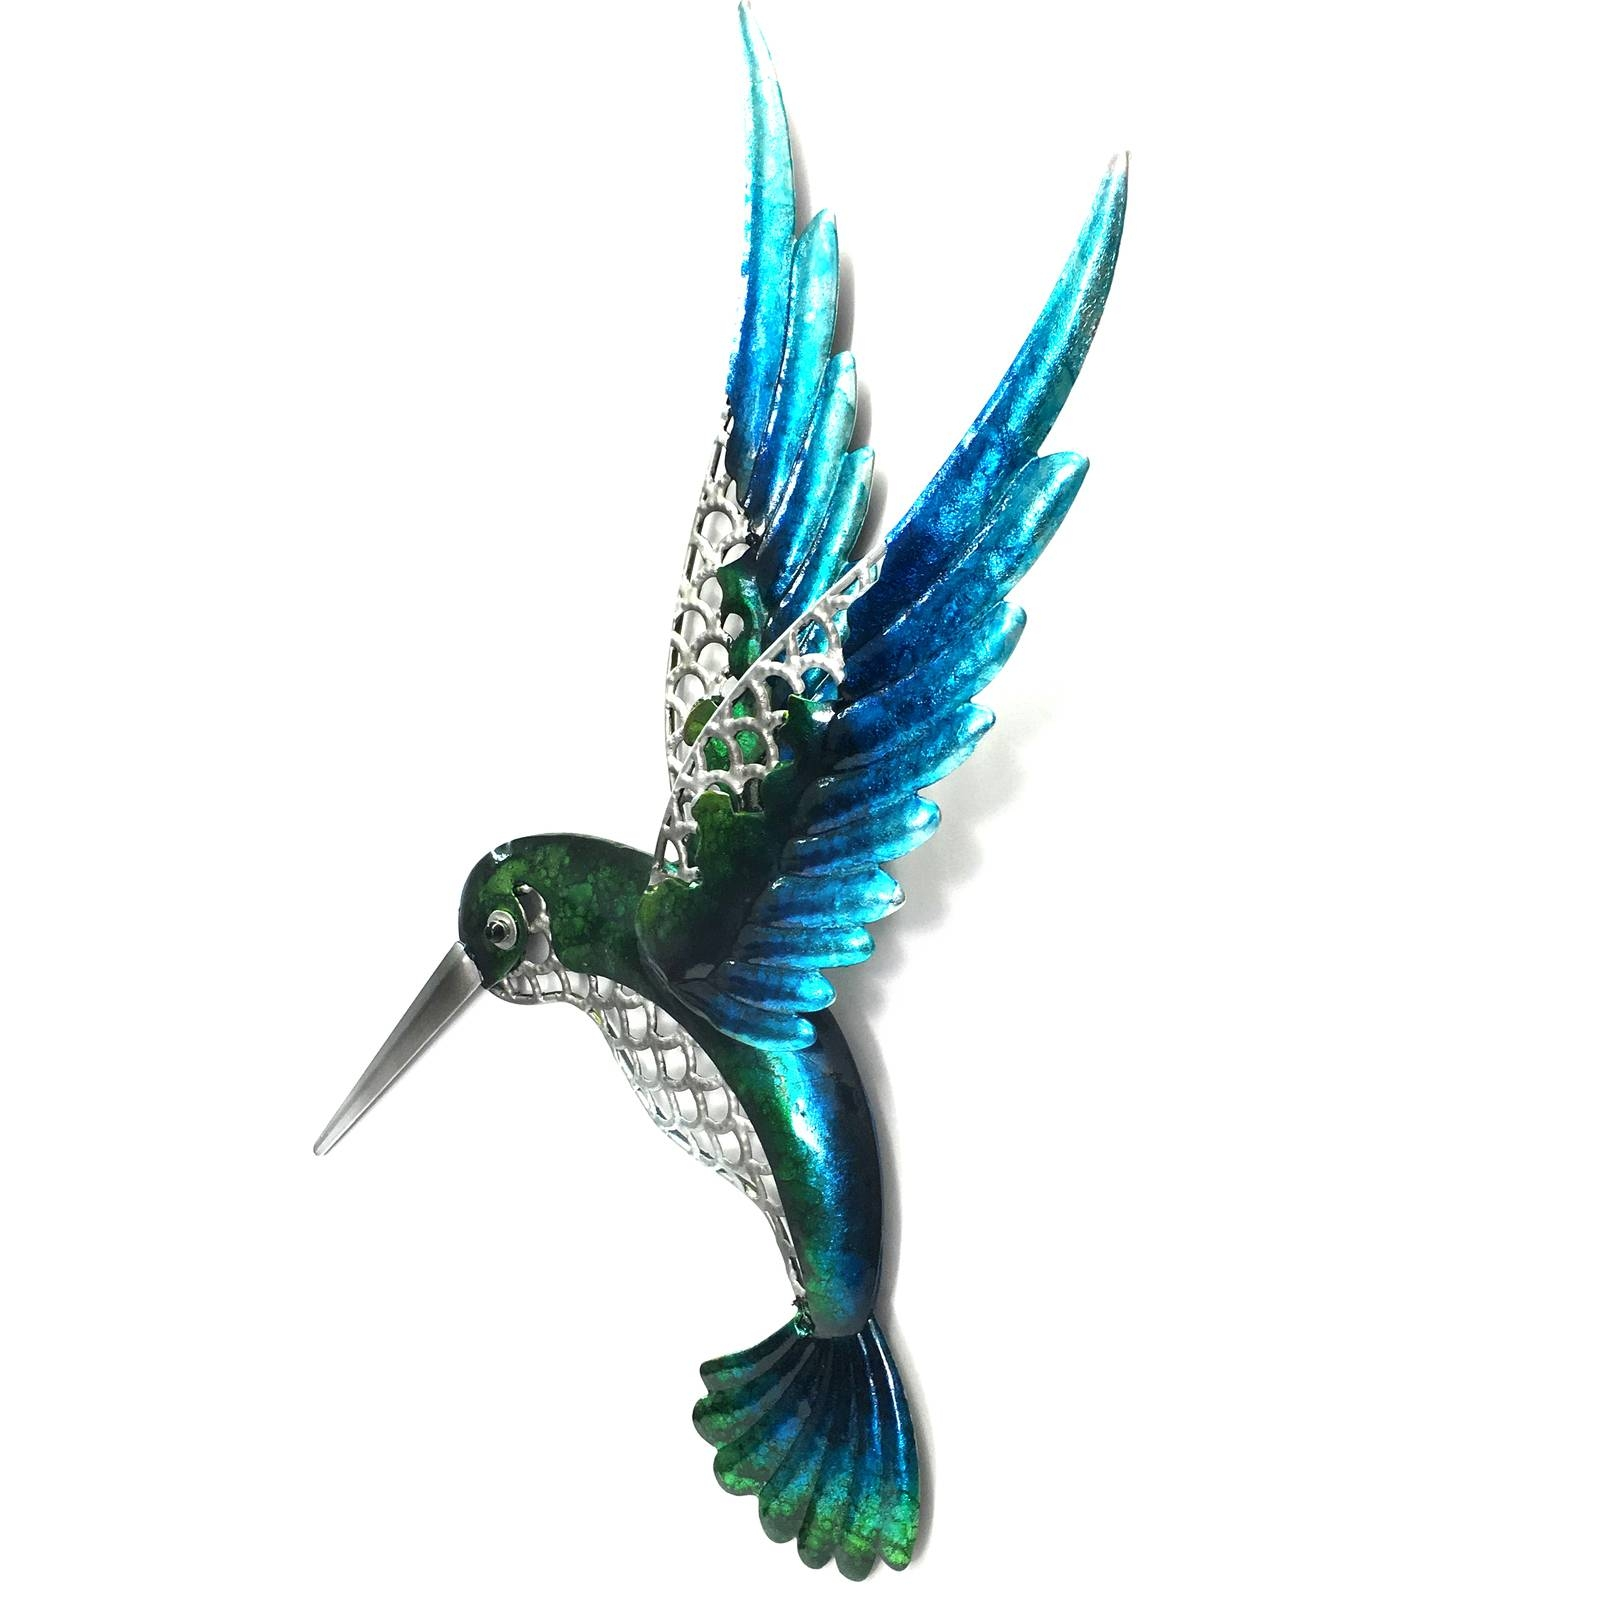 Hummingbird Metal Wall Art 46Cm Within 2018 Hummingbird Metal Wall Art (Gallery 6 of 20)